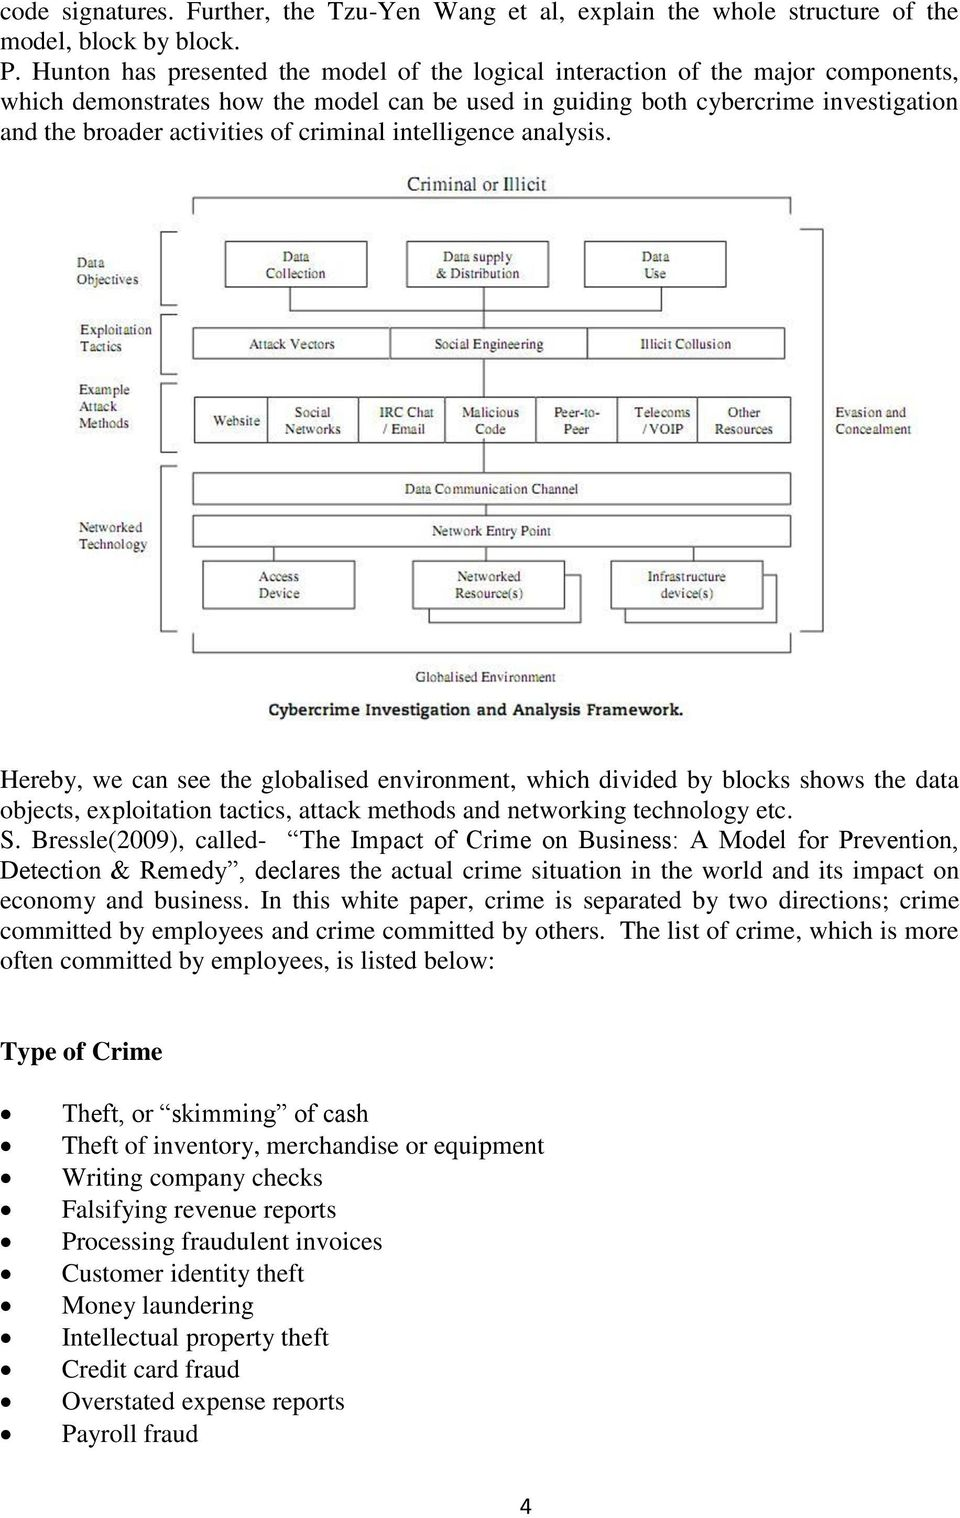 criminal intelligence analysis. Hereby, we can see the globalised environment, which divided by blocks shows the data objects, exploitation tactics, attack methods and networking technology etc. S.